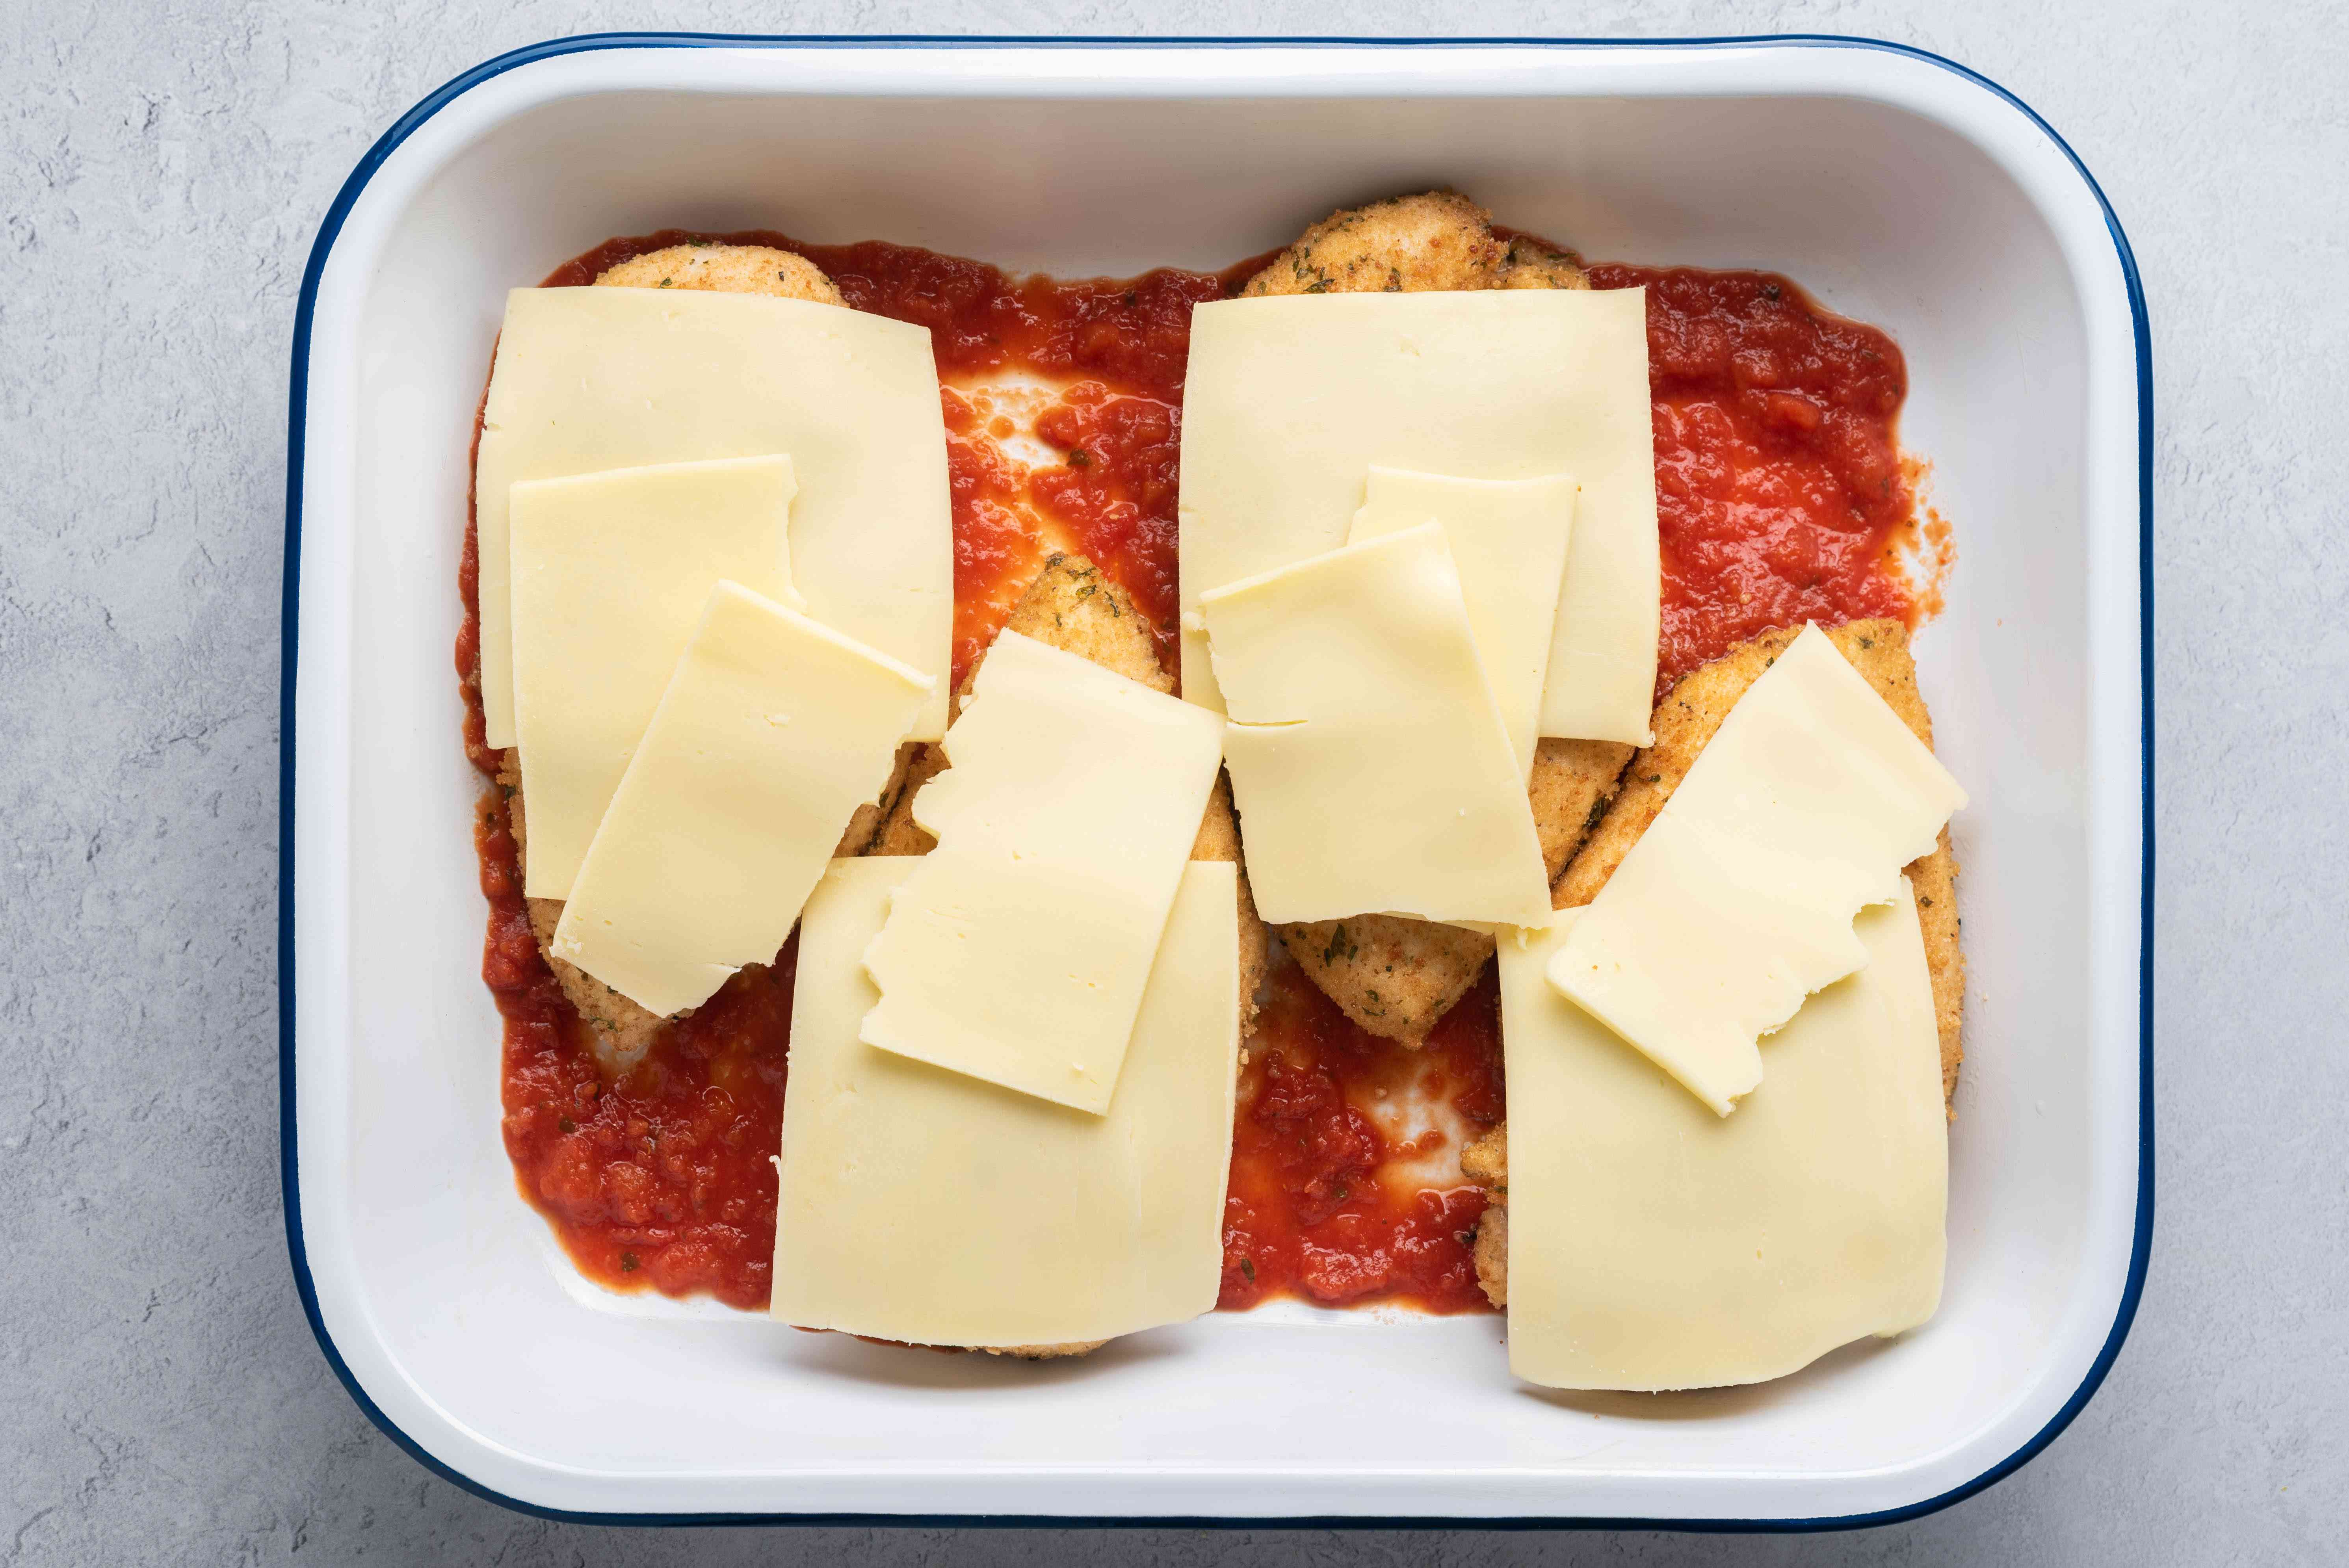 sauce, chicken and cheese in a baking dish